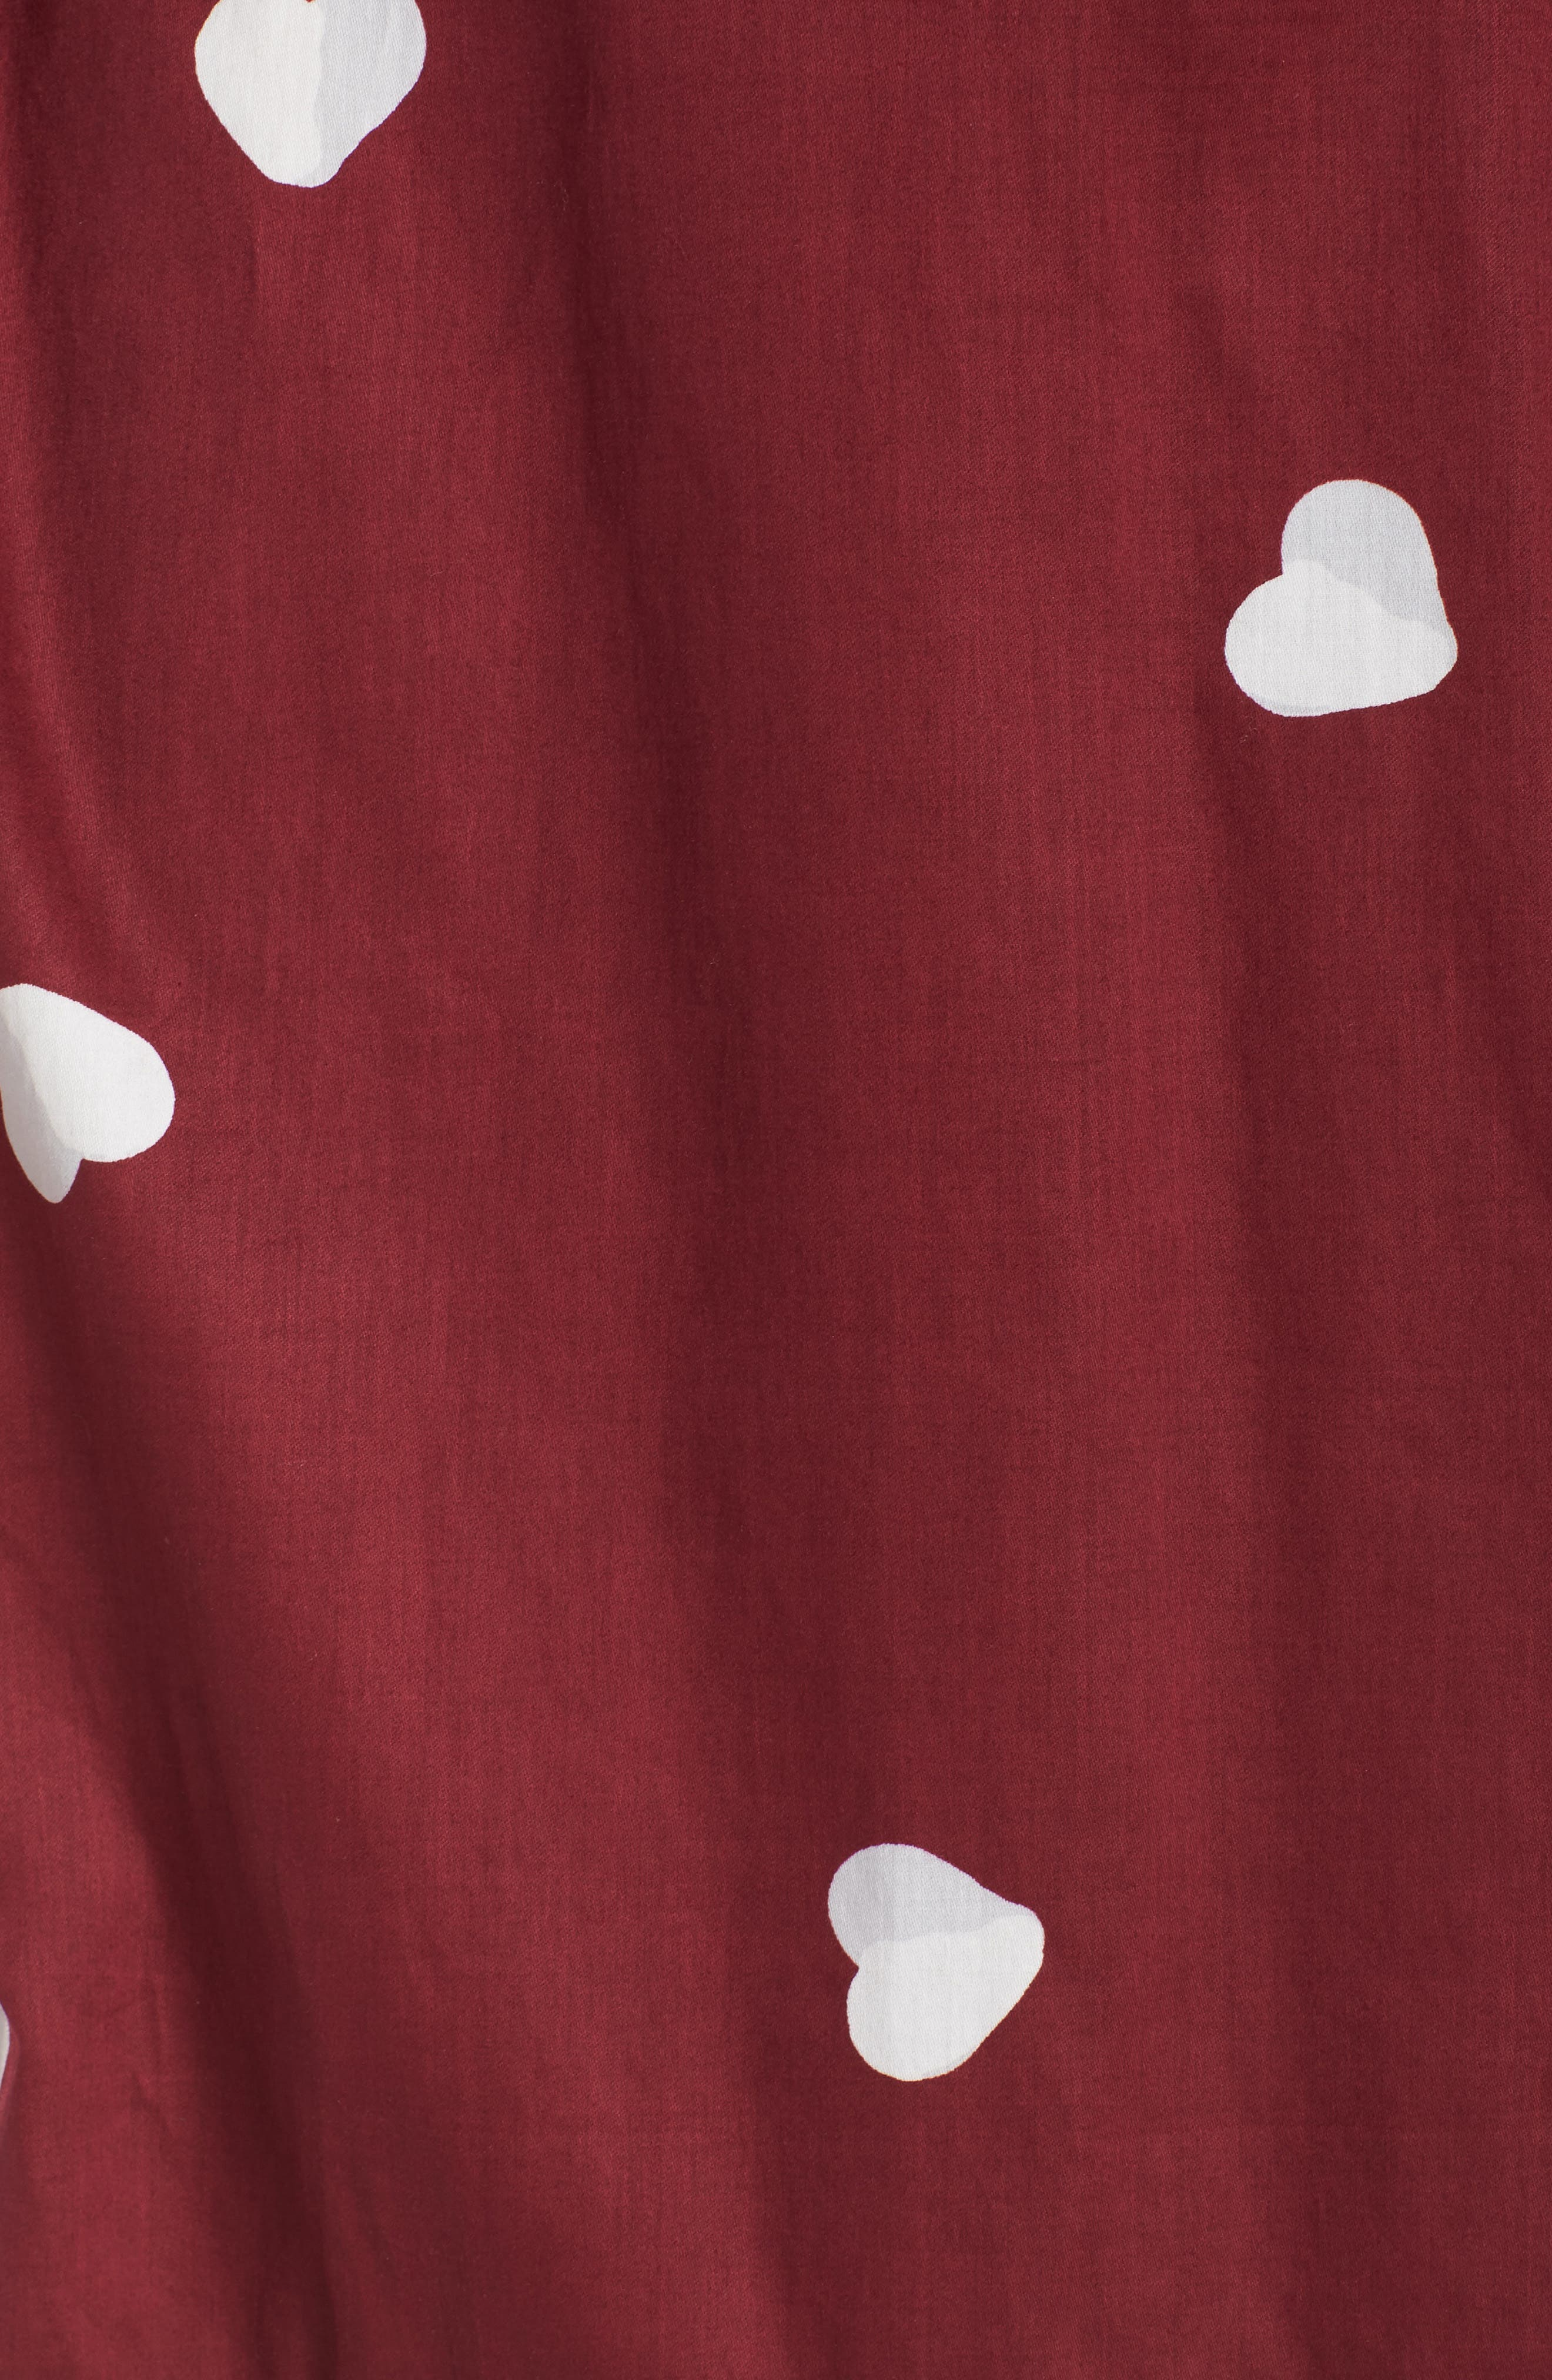 Margaux Short Cotton Robe,                             Alternate thumbnail 5, color,                             LONELY HEARTS MAROON